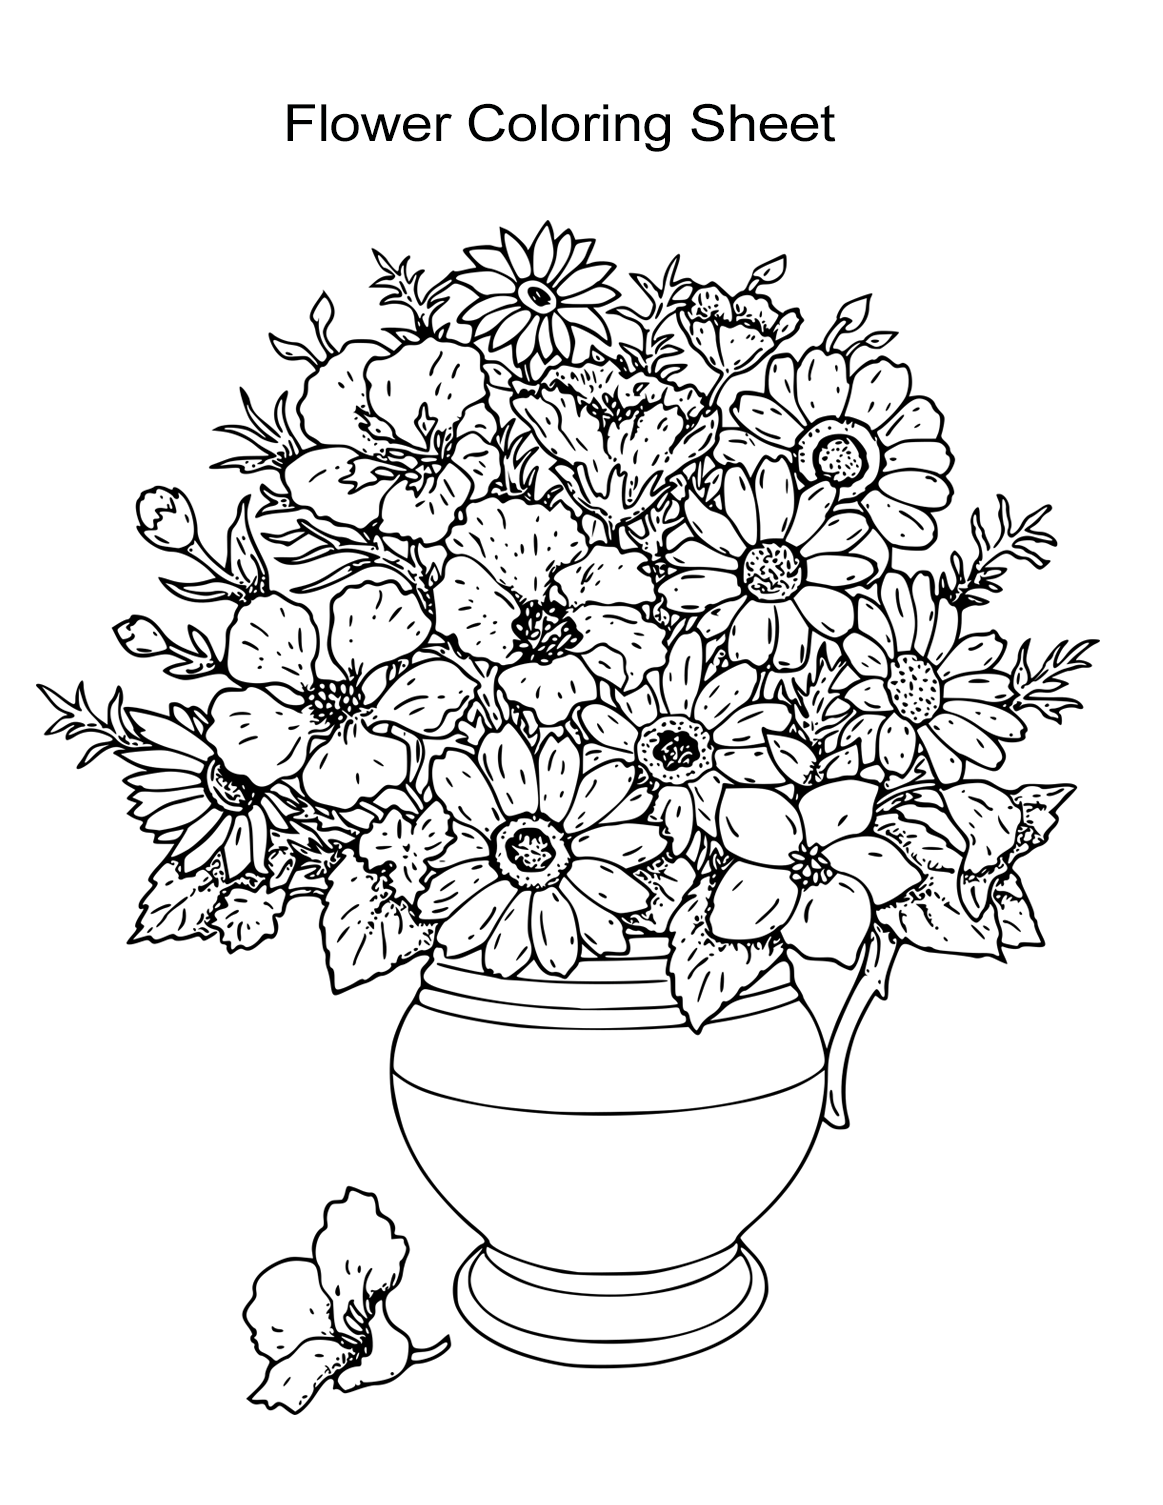 coloring pages about flowers free easy to print flower coloring pages tulamama about flowers coloring pages